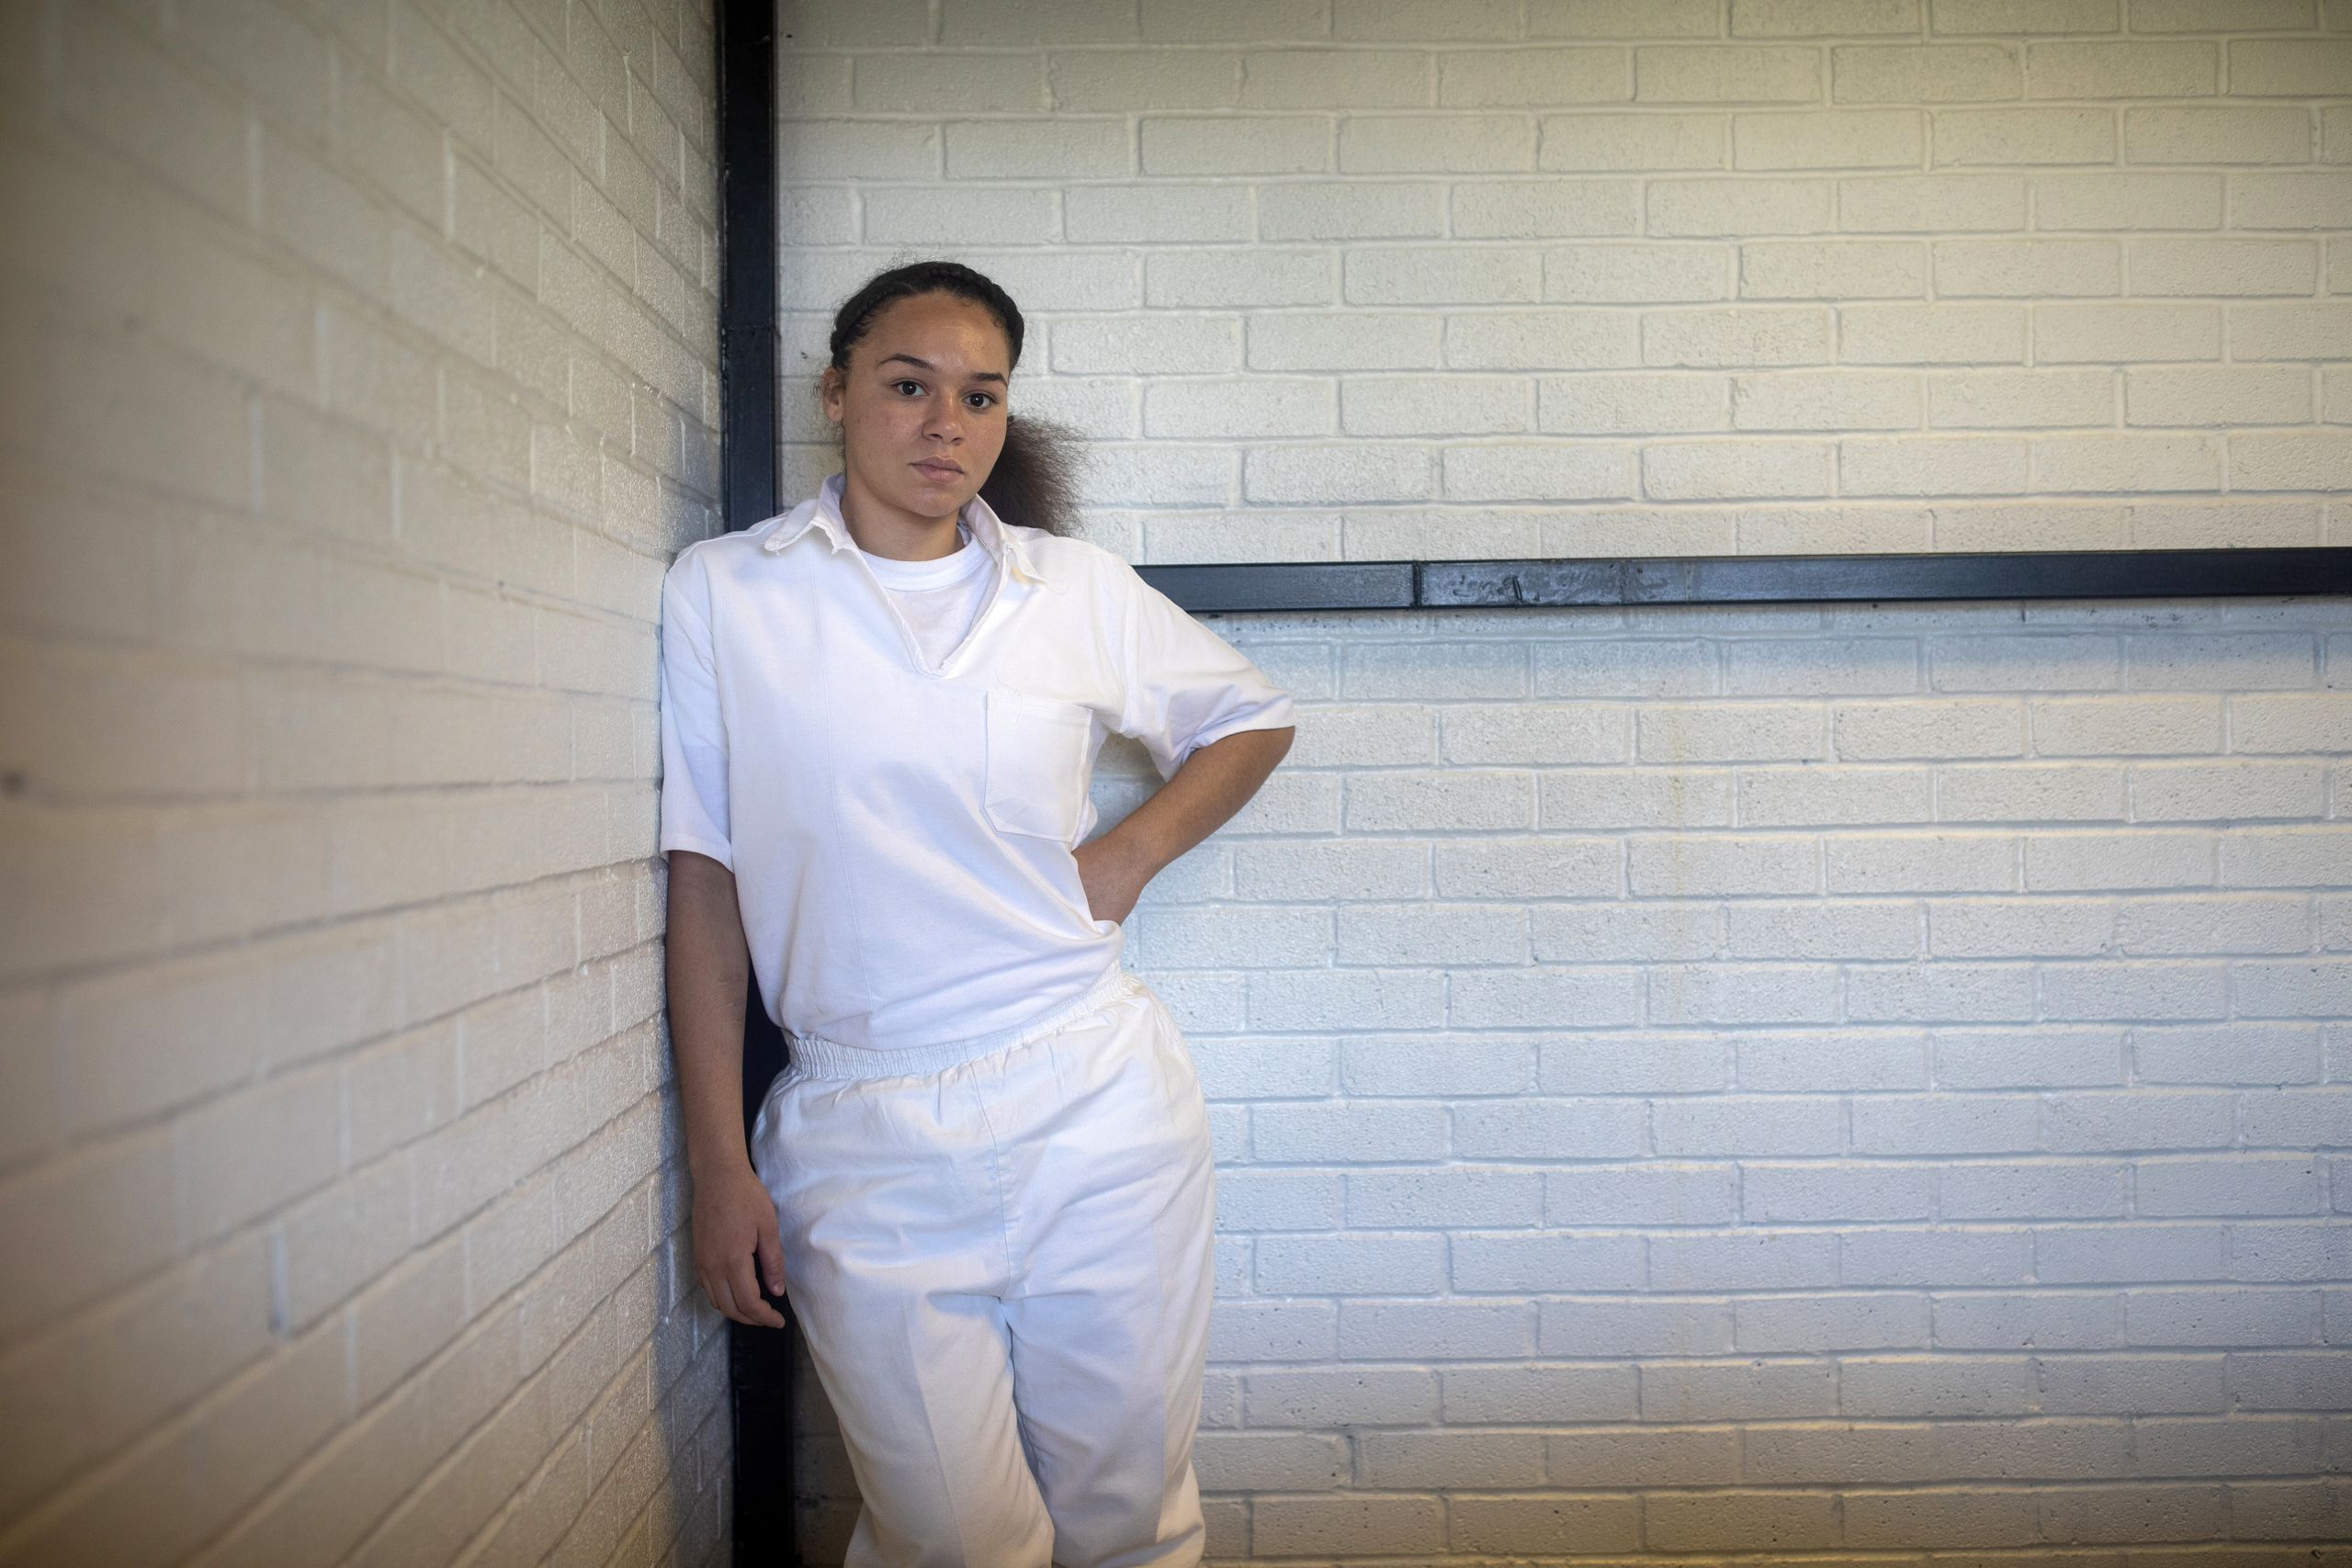 Lici wants to be a criminal defense lawyer when she gets out of prison, so that she can help other vulnerable youth in her si